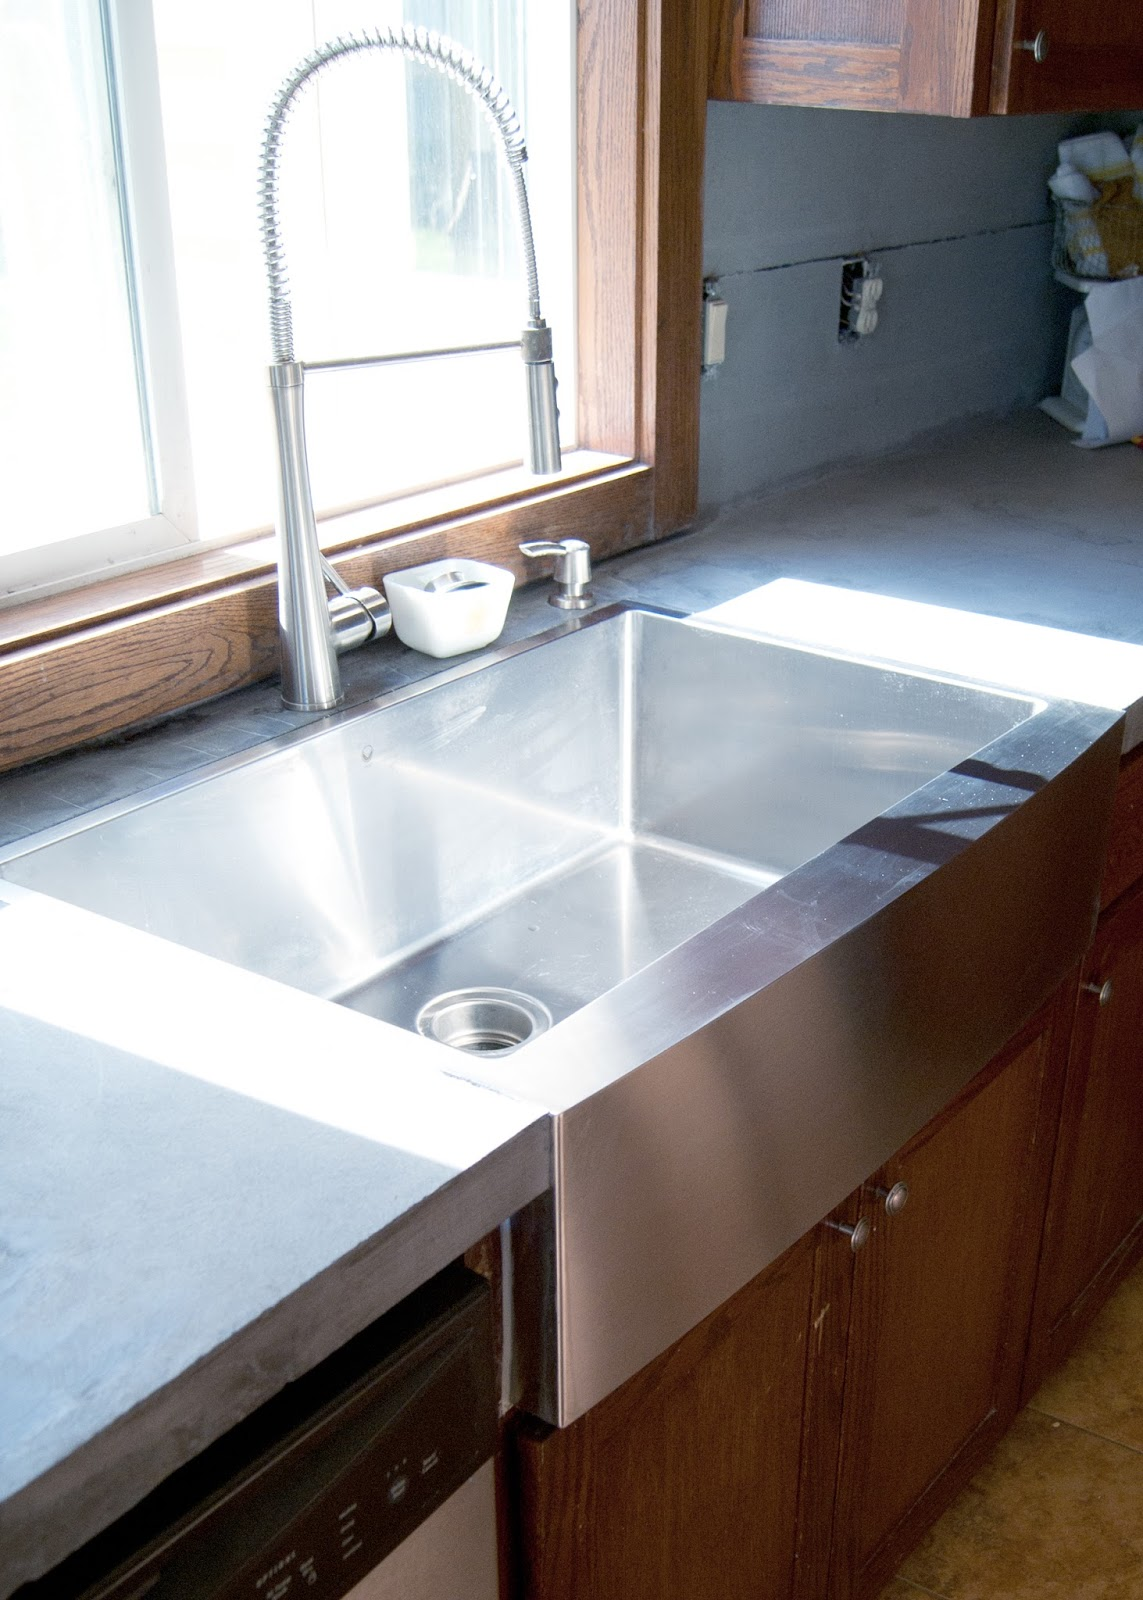 New Stainless Steel Apron Front Sink + How We Installed It In Existing  Cabinetry | Averie Lane: New Stainless Steel Apron Front Sink + How We  Installed It ...